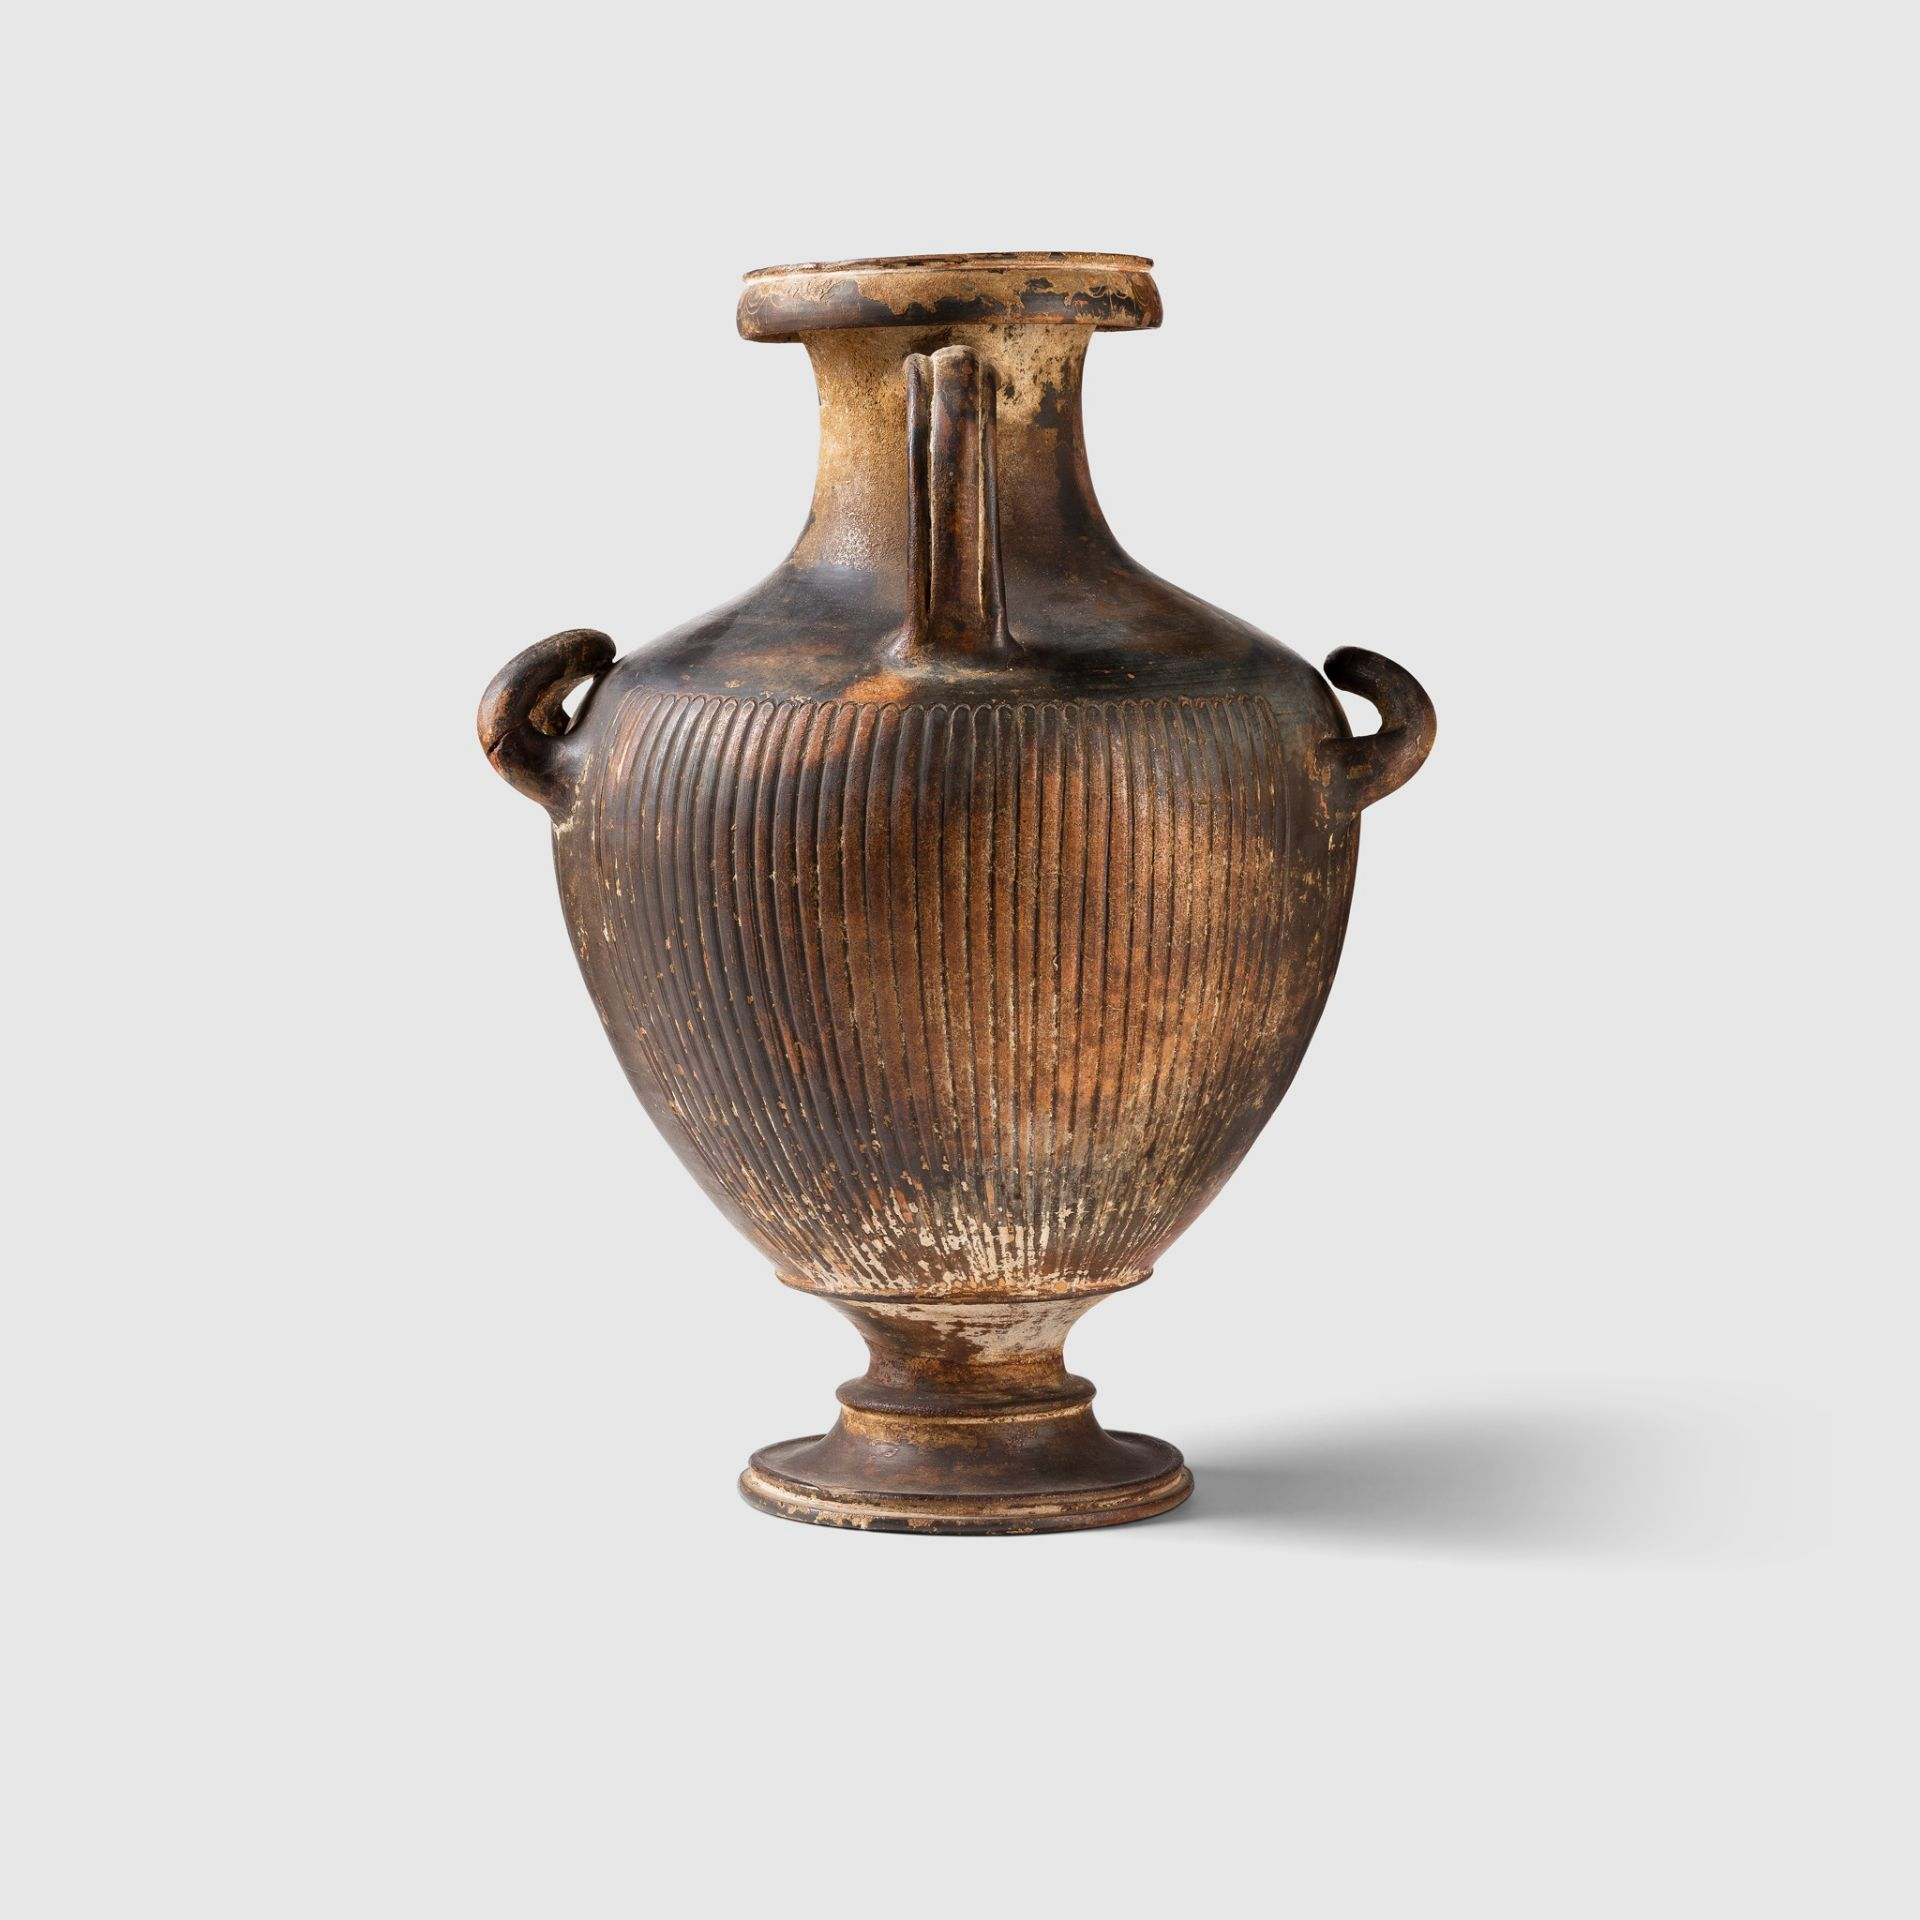 GNATHIAN WARE HYDRIA SOUTHERN ITALY, C. 3RD CENTURY B.C. - Image 3 of 4